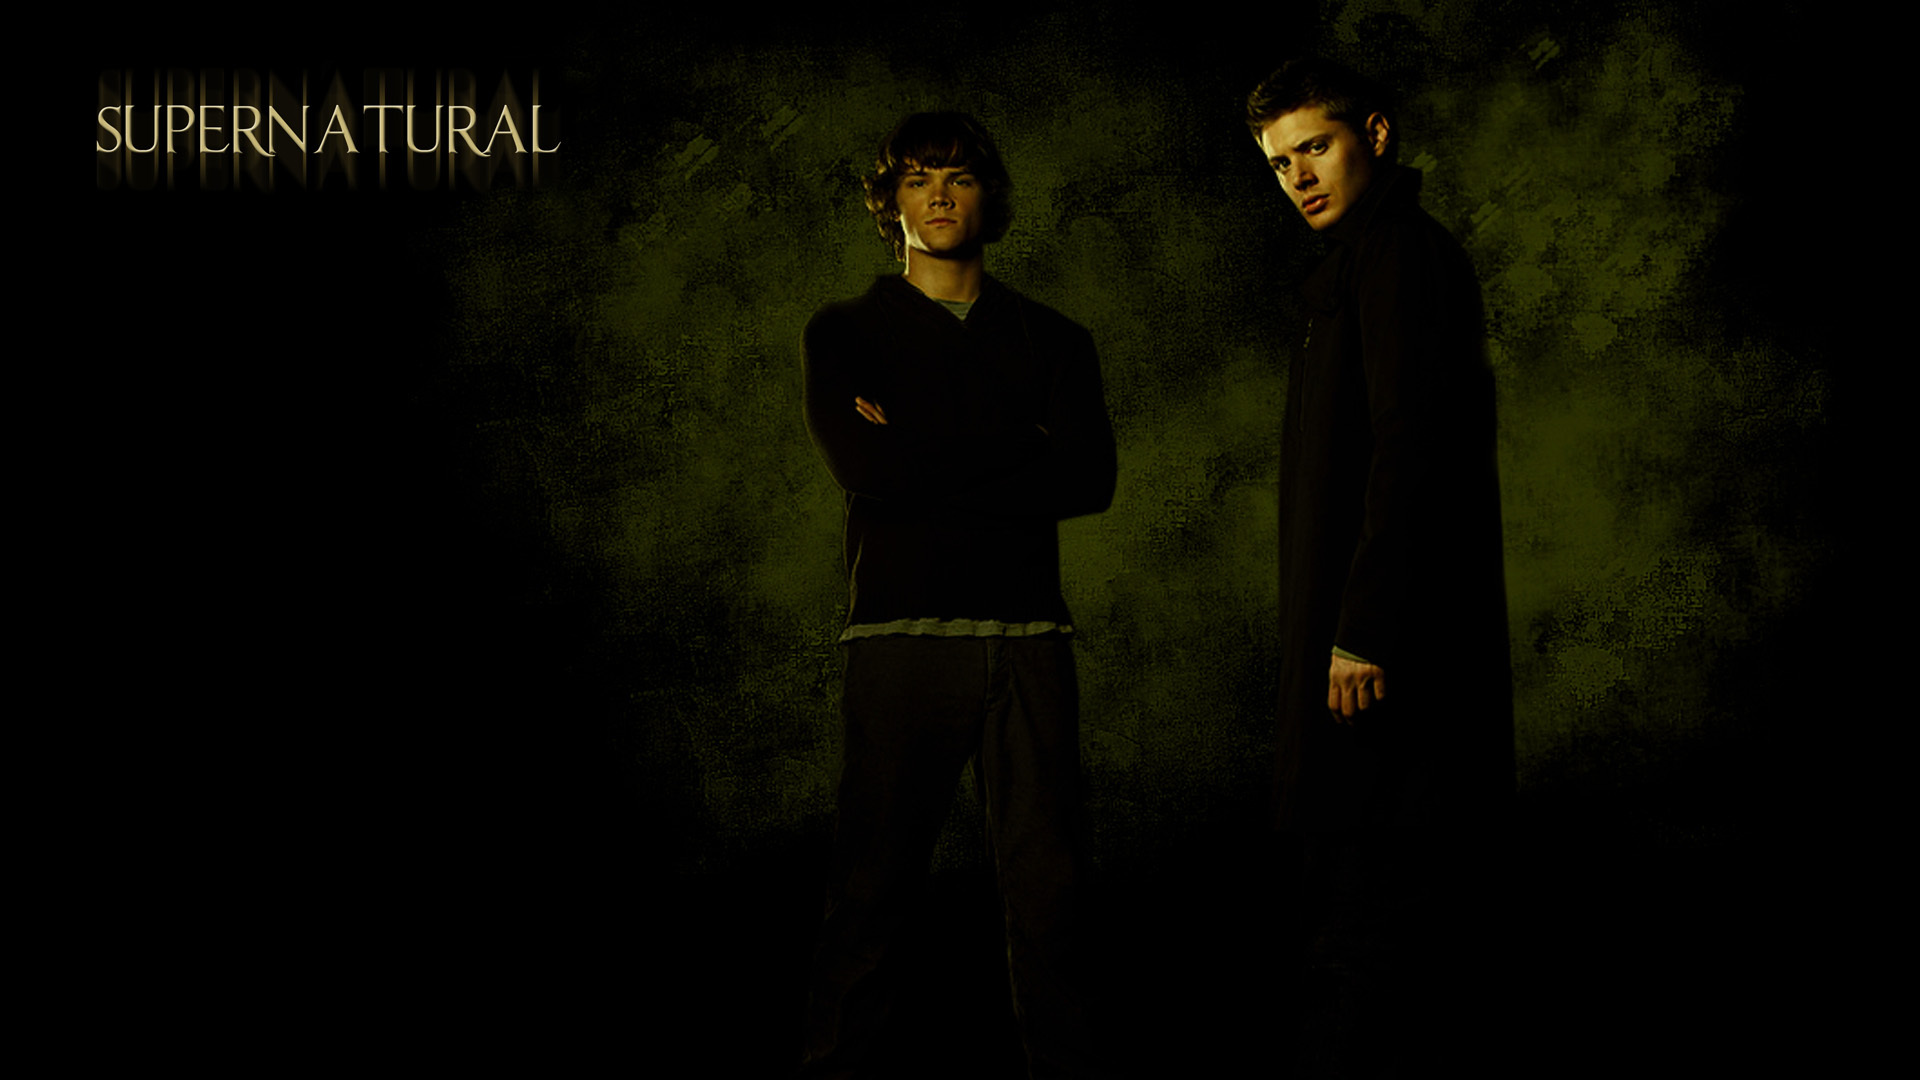 Hd Wallpapers Supernatural Logo 800 X 450 178 Kb Jpeg HD Wallpapers 1920x1080